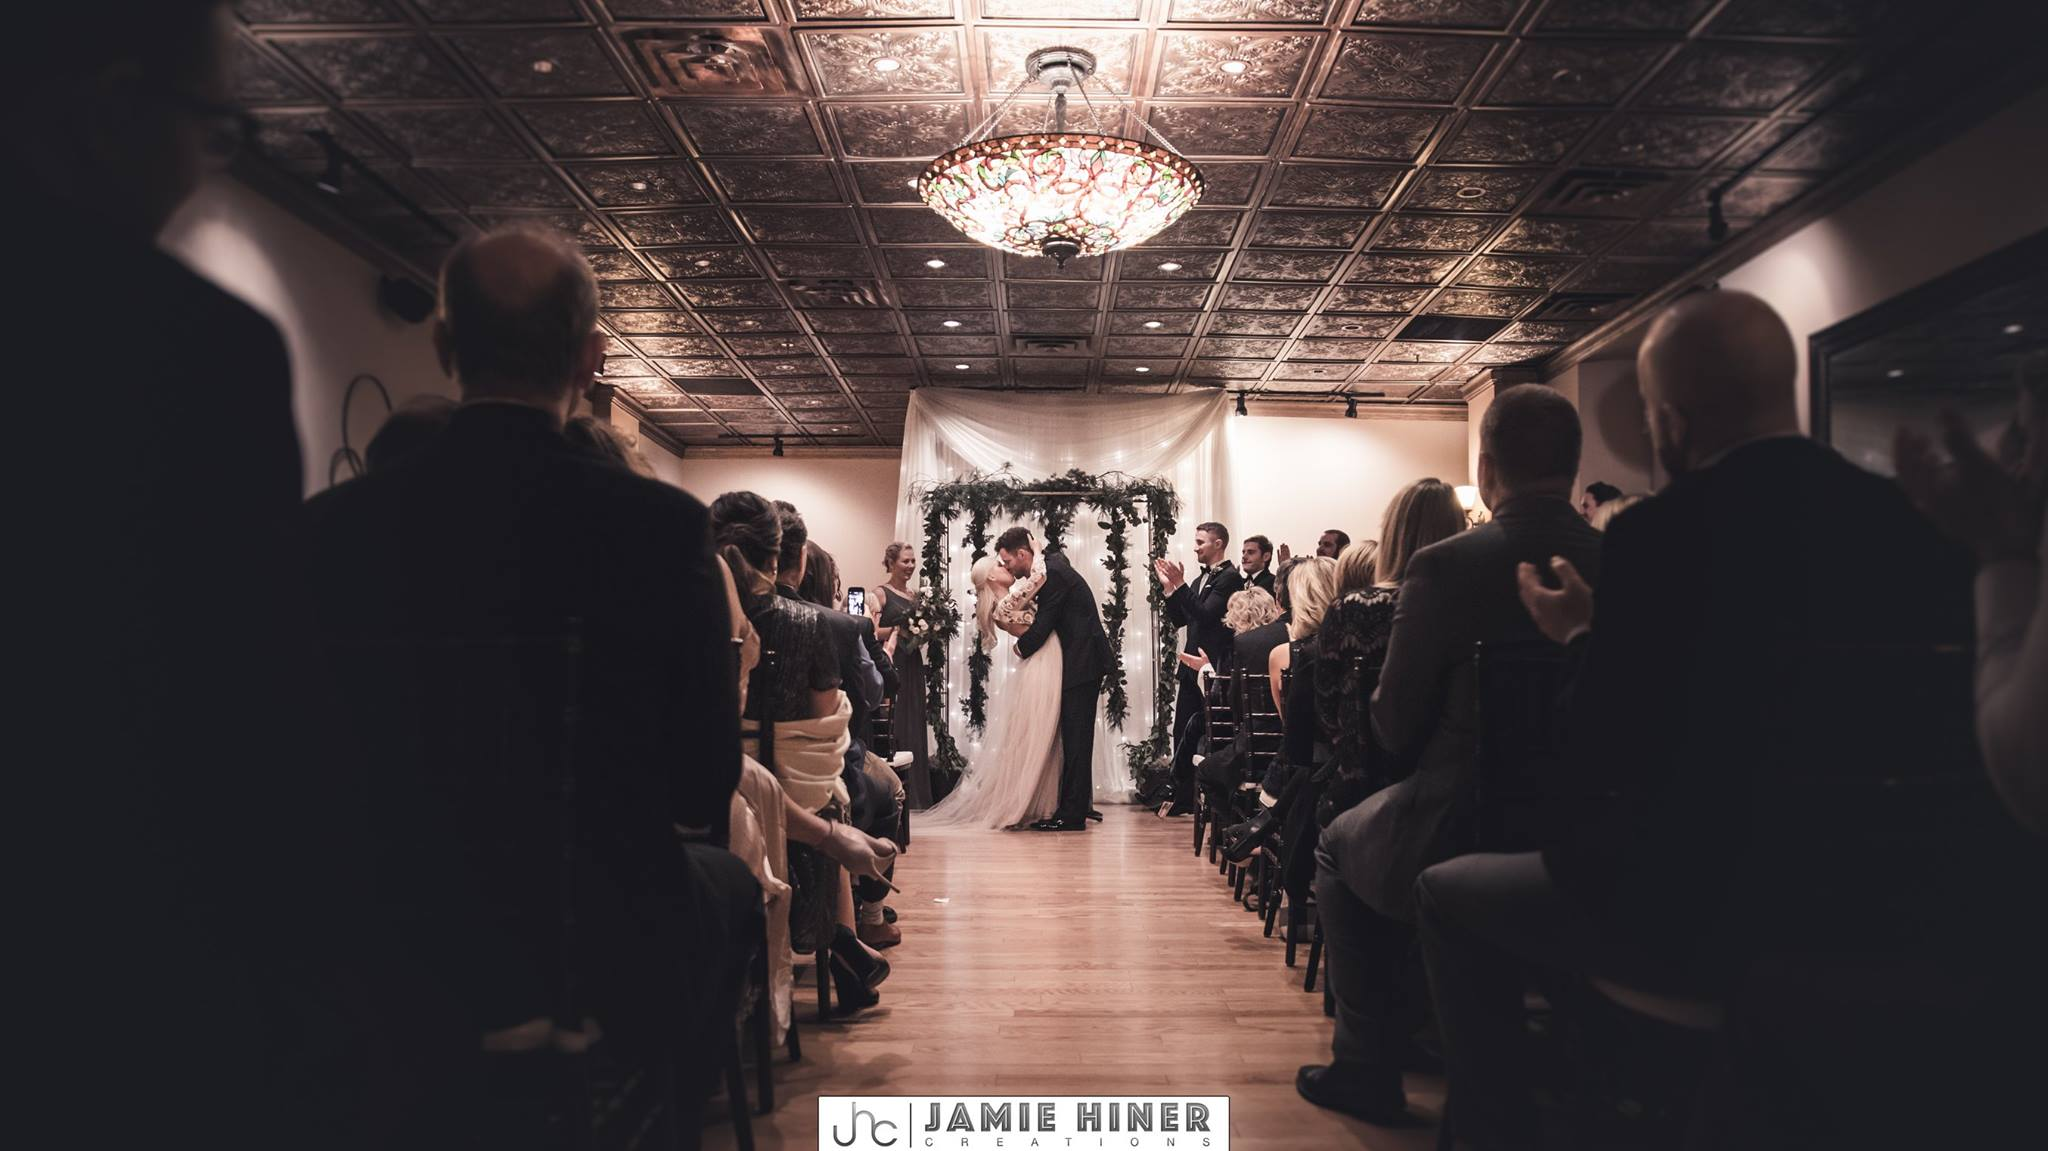 Jamie Hiner Creations, 413 on Wacouta, winter wedding, winter flowers, winter wedding flowers, winter bouquet, winter bridal, Saint Paul wedding, bridal style, winter wedding inspiration, Minnesota wedding, Saint Paul wedding florist, Minnesota wedding florist, winter floral, Artemisia Studios